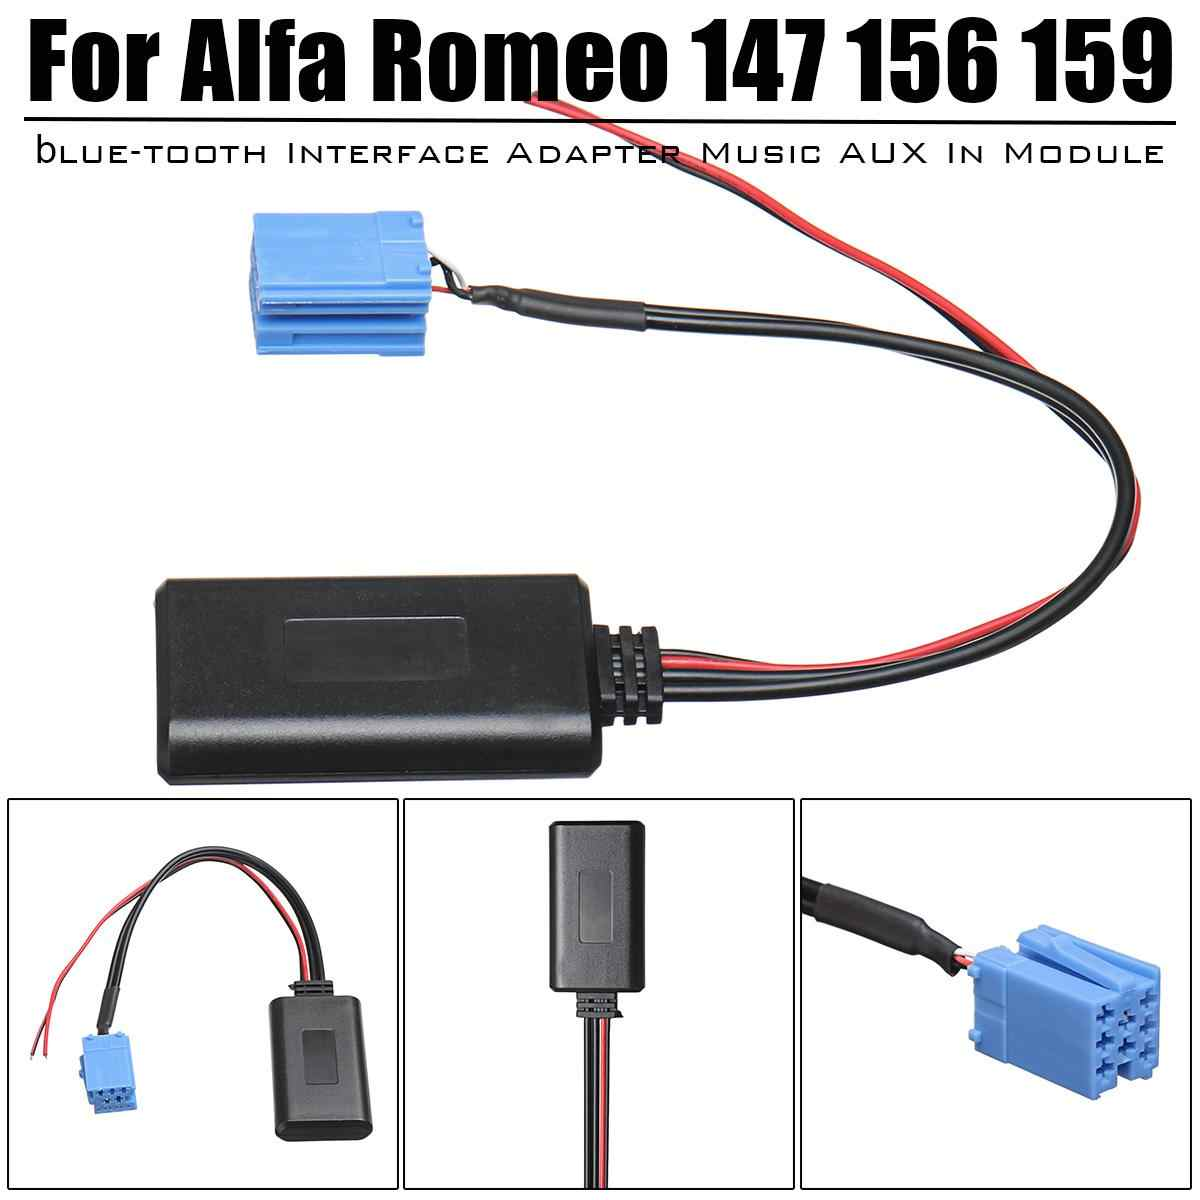 NEW AUX blue-tooth Music Adapter Interface Wireless Radio Stereo Aux Cable For Alfa Romeo 147 156 159 Brera Mito GT Giulietta